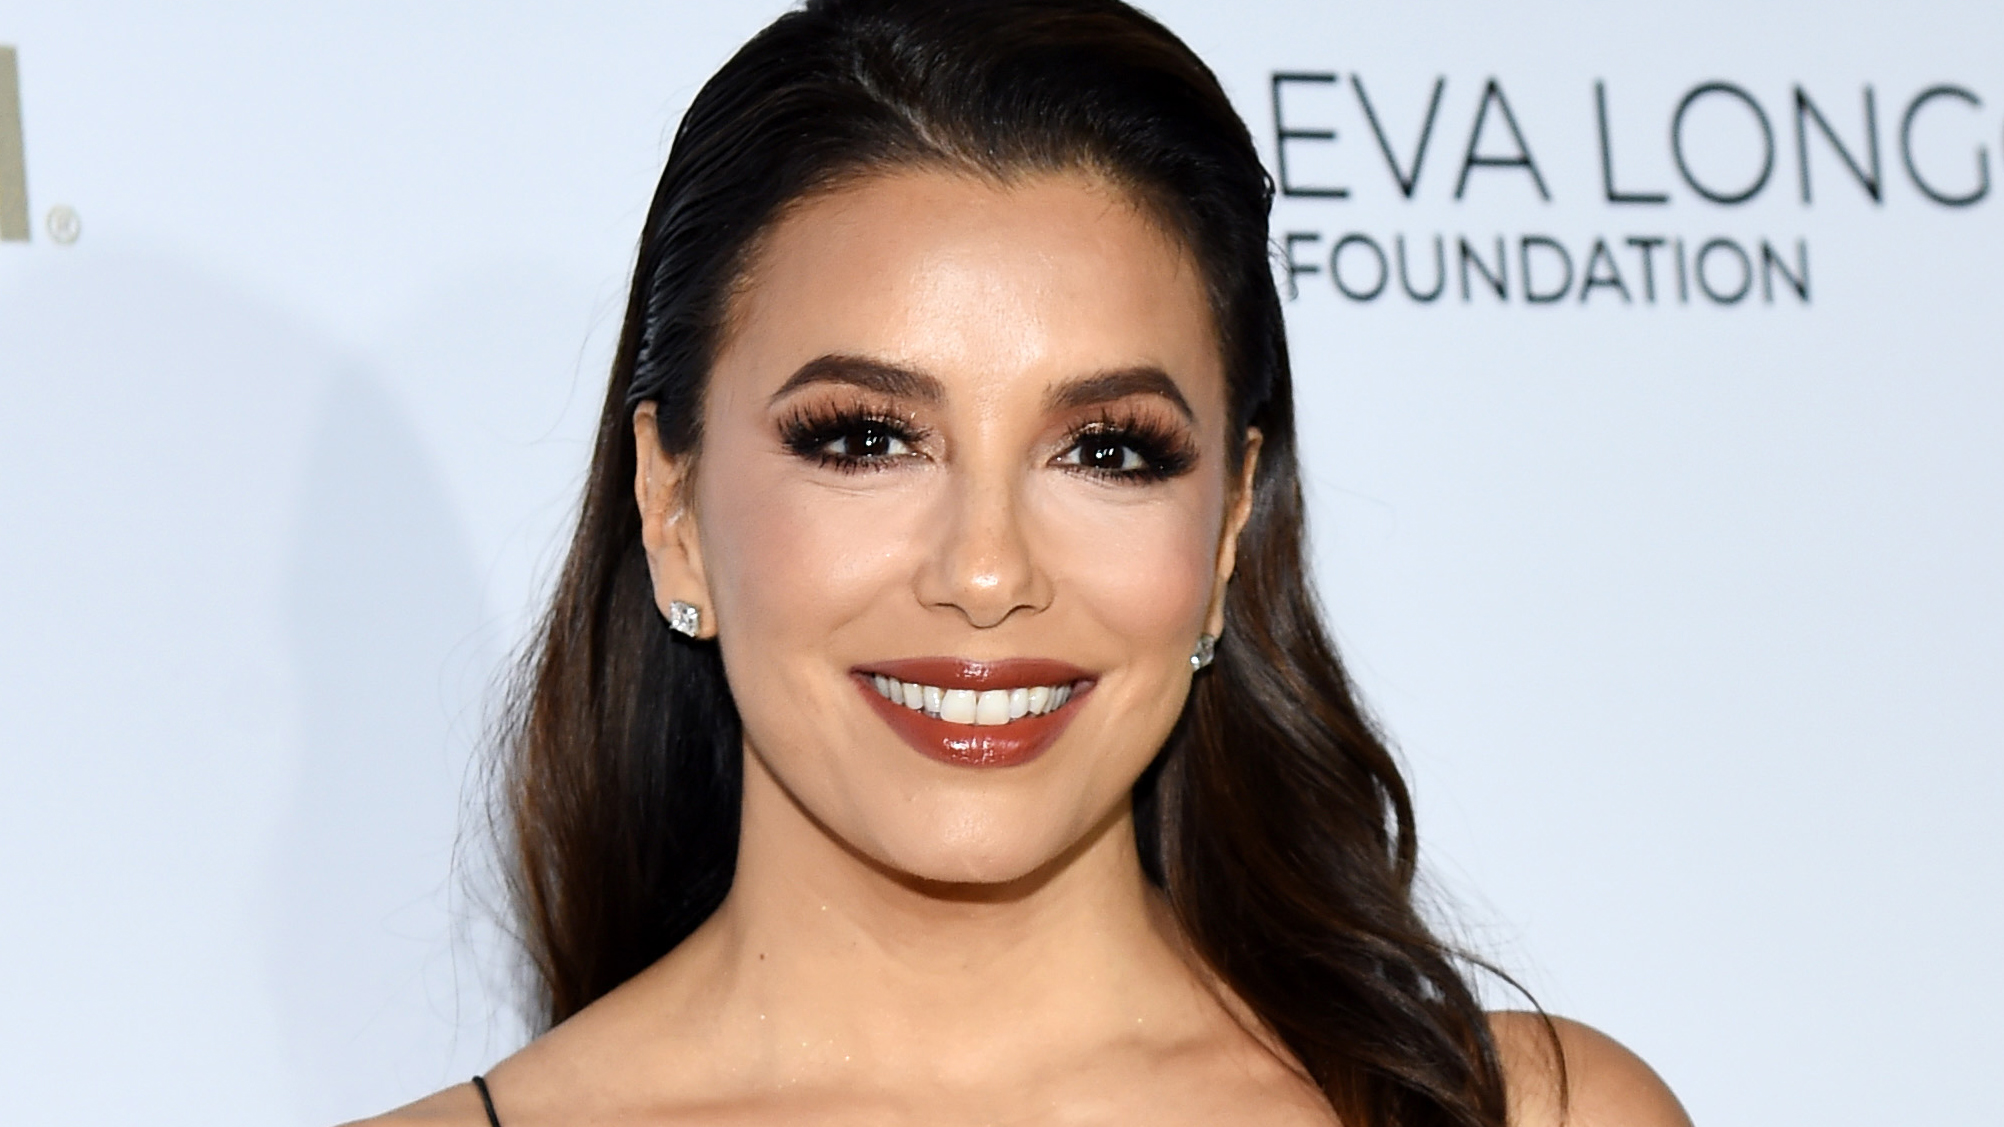 Eva Longoria sizzles in white swimsuit as she enjoys 'fun in the sun' in Mexico